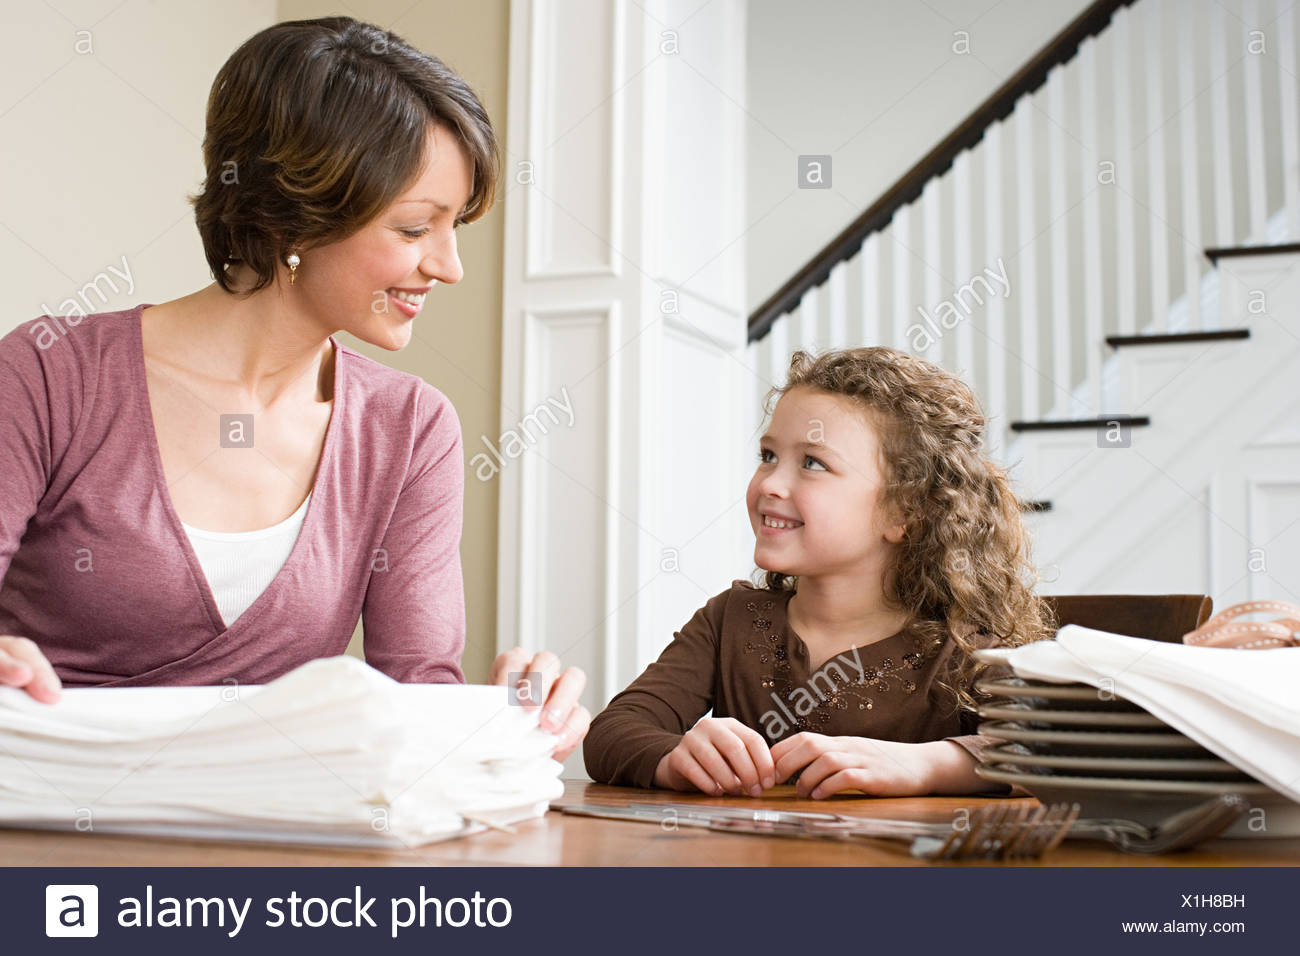 Mother and daughter with napkins - Stock Image